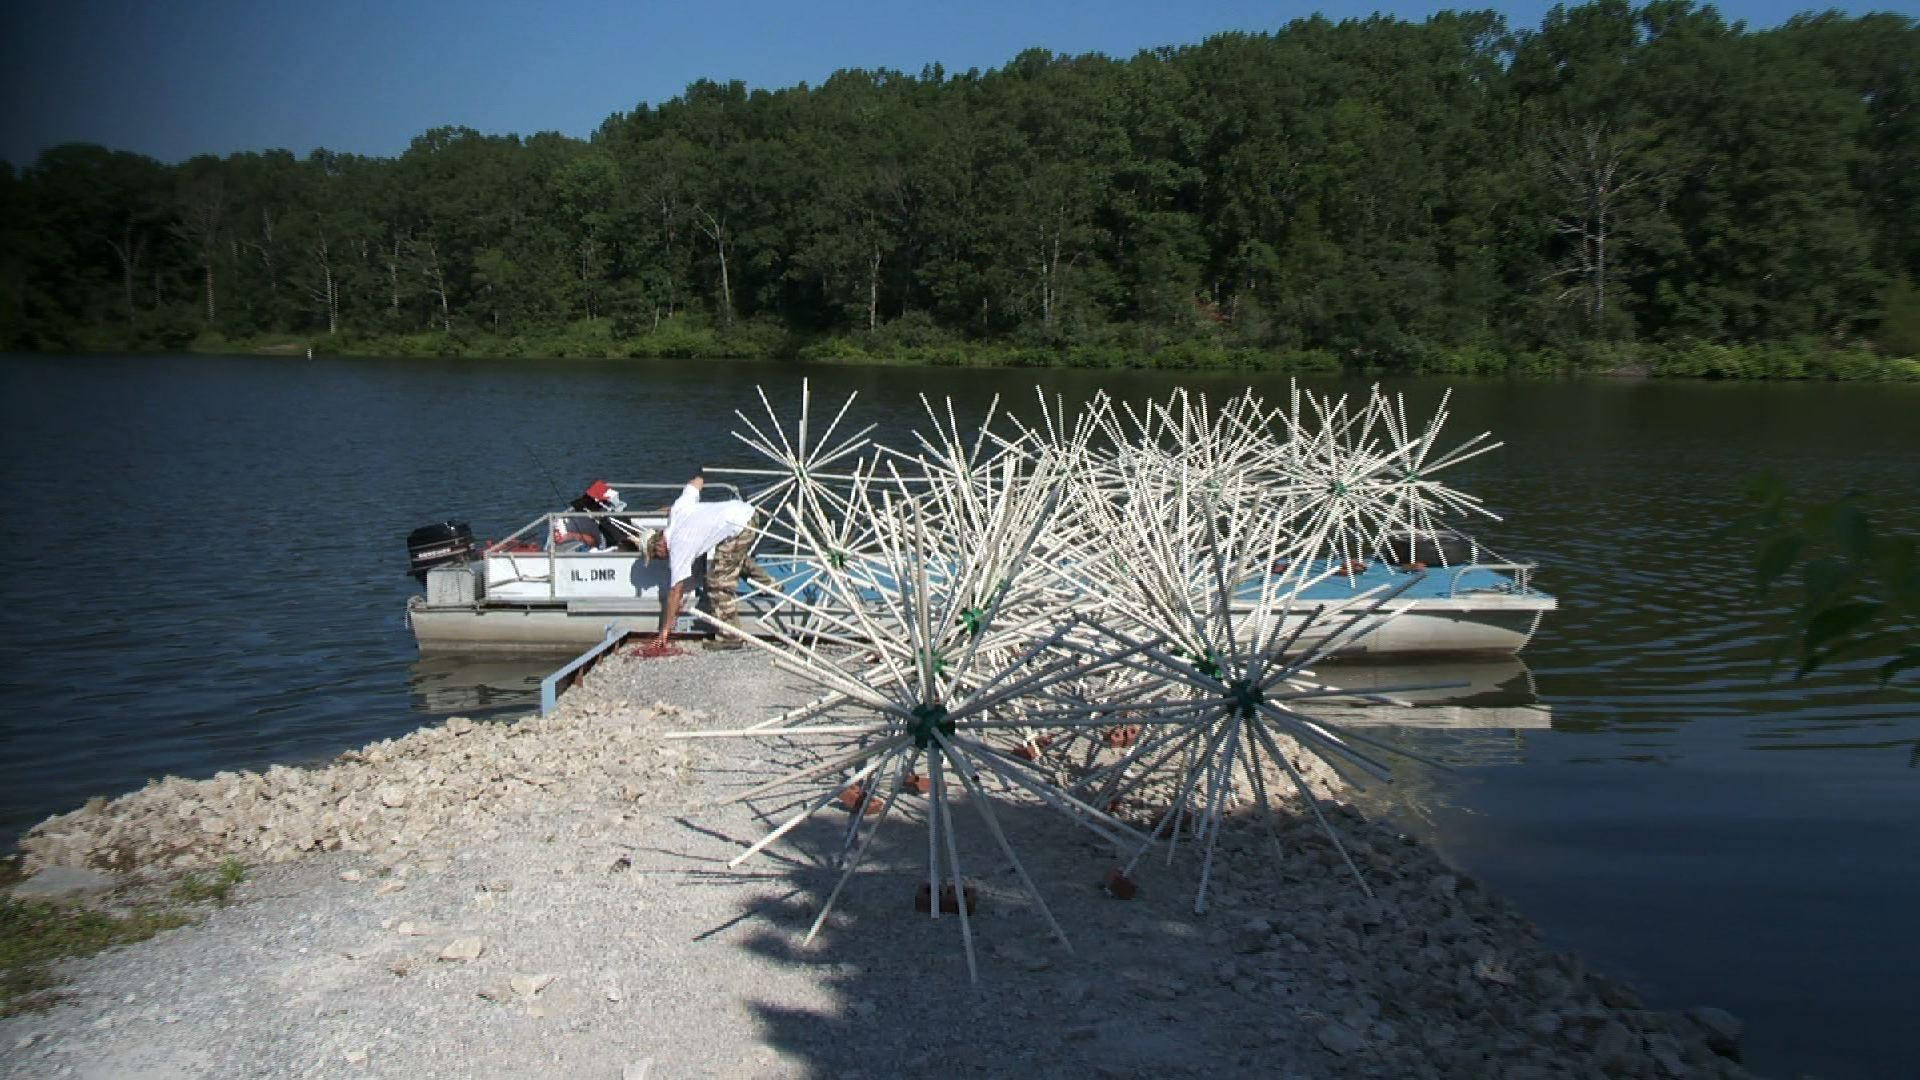 Video porcupine balls watch wsiu infocus online wgby for Porcupine fish attractor